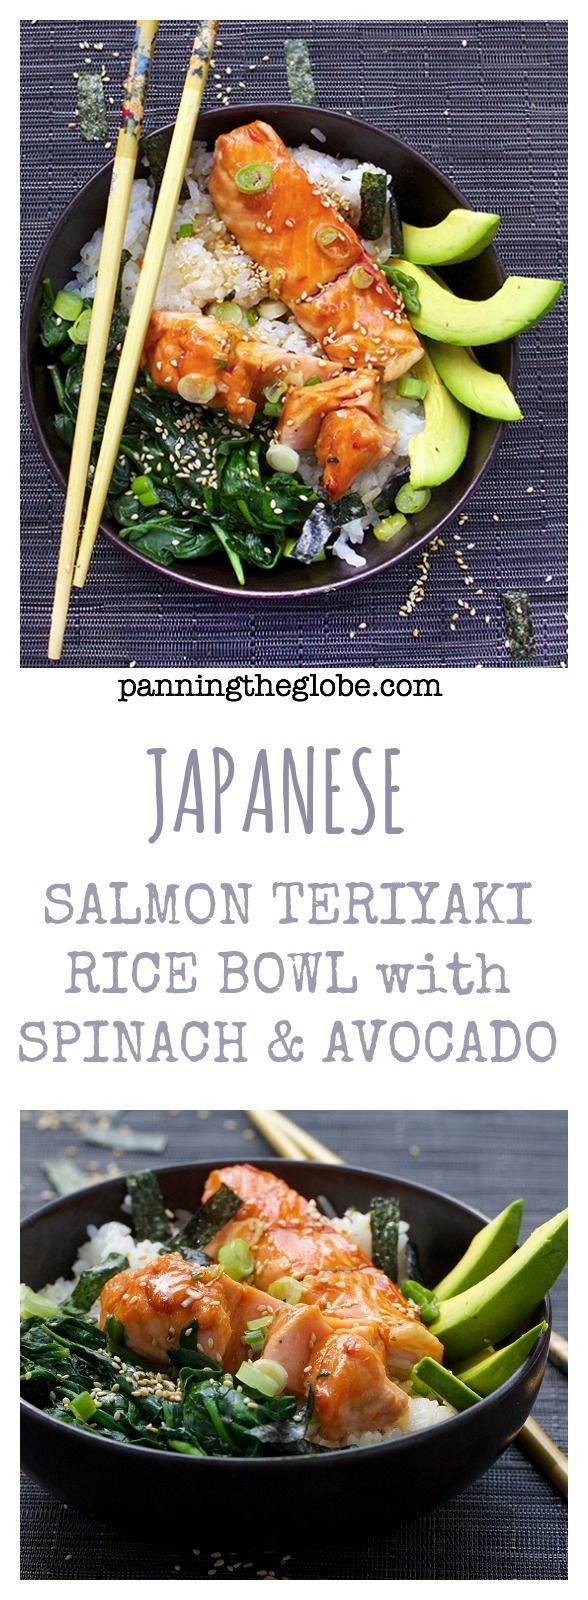 Teriyaki Salmon Rice Bowl with Spinach, Avocado and Sesame-Nori Confetti